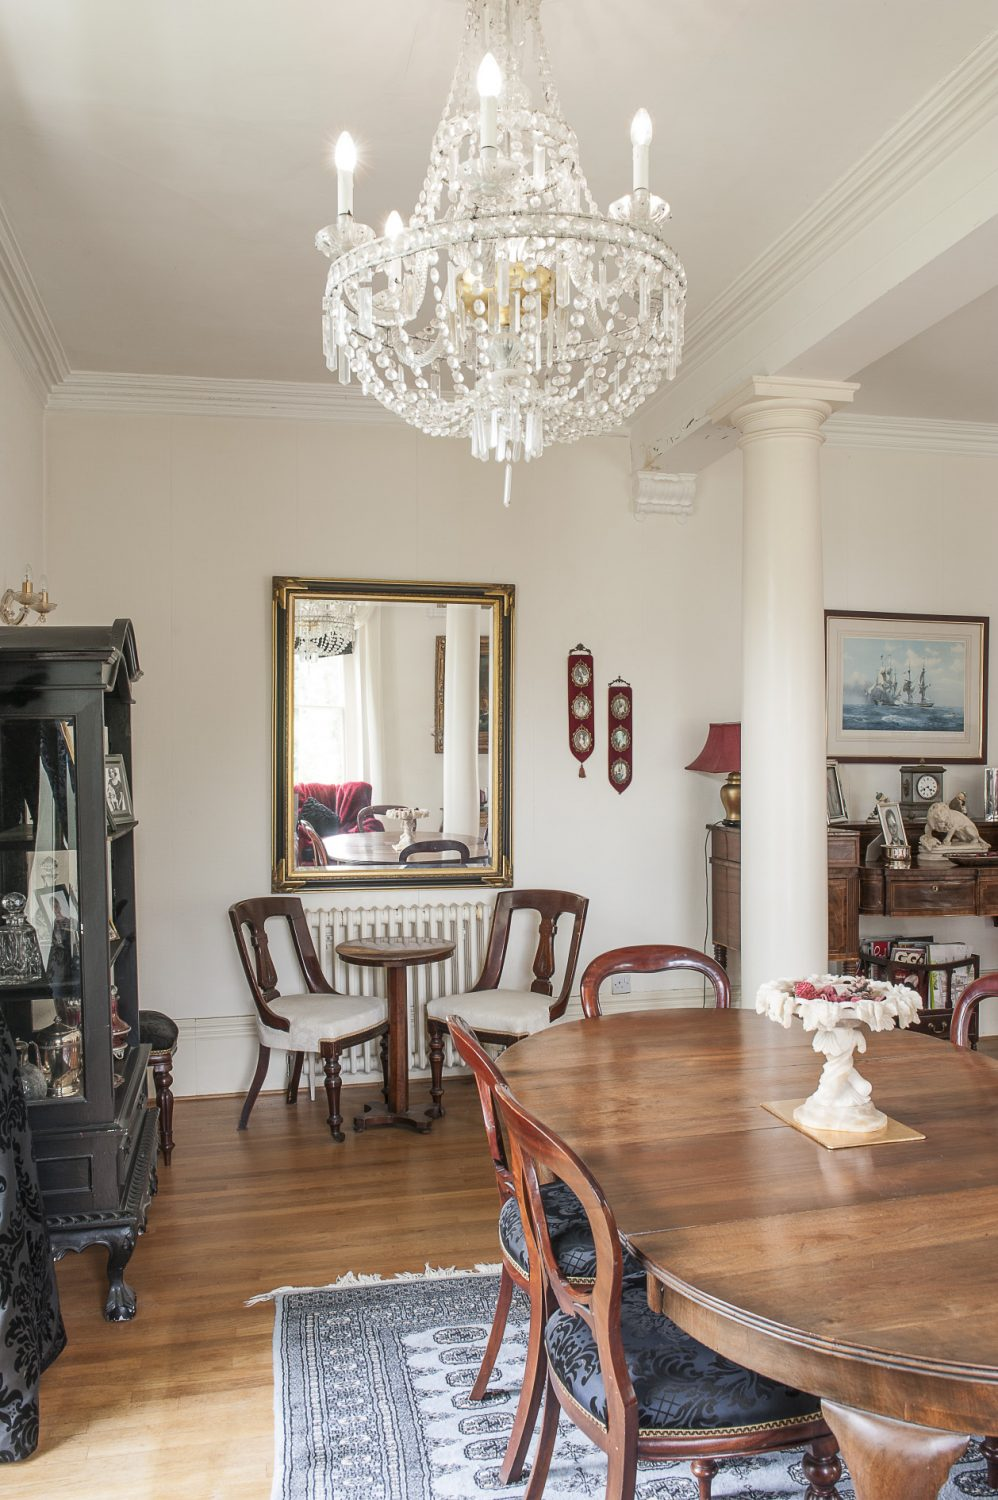 One third of the room now serves as a dining area, the table overhung by a huge Florentine chandelier